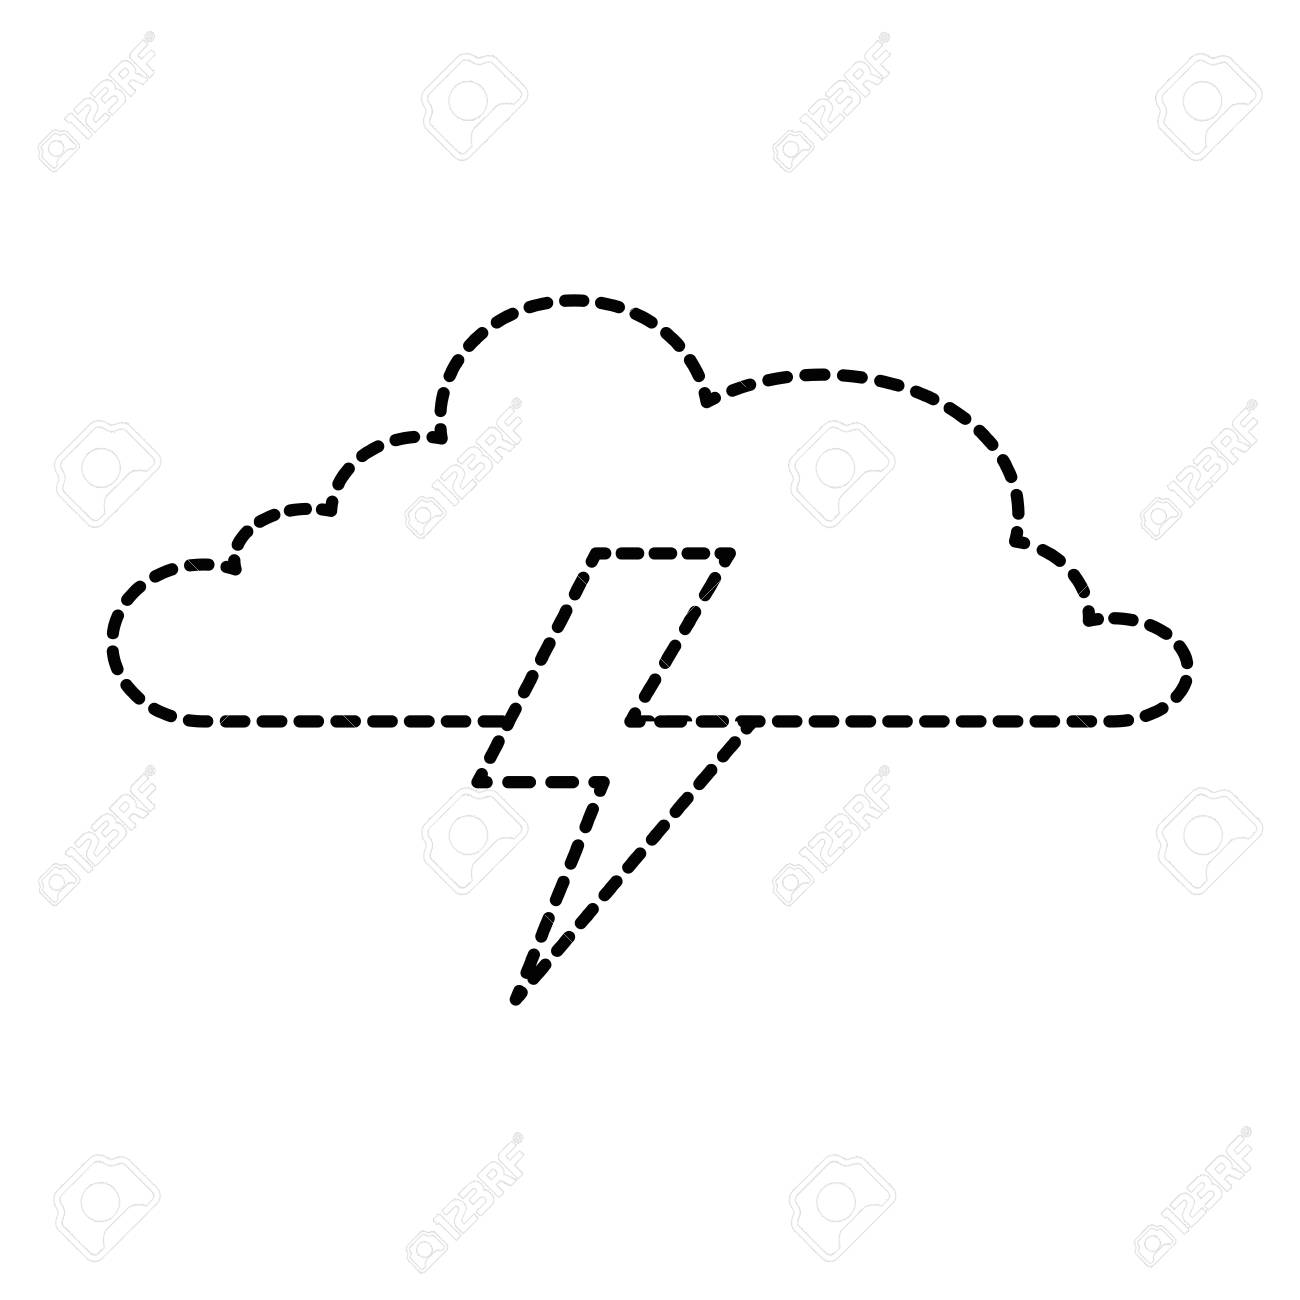 cloud weather with thunder vector illustration design royalty free cliparts vectors and stock illustration image 96272338 123rf com